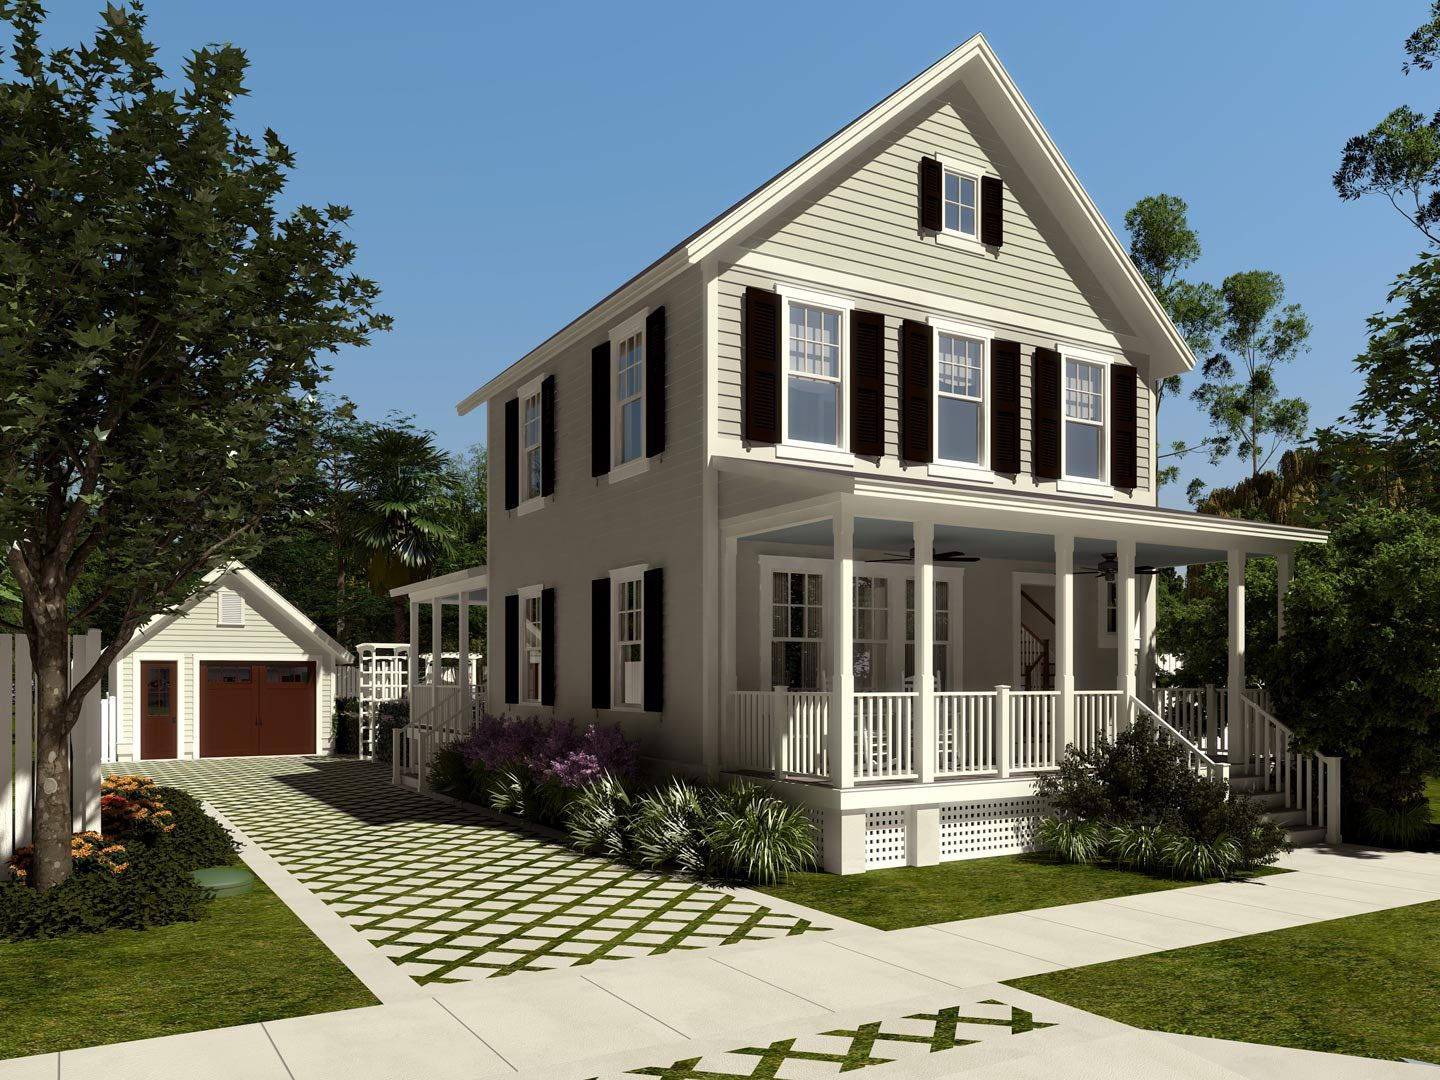 Old house designs for new construction farmhouse design for Home construction styles